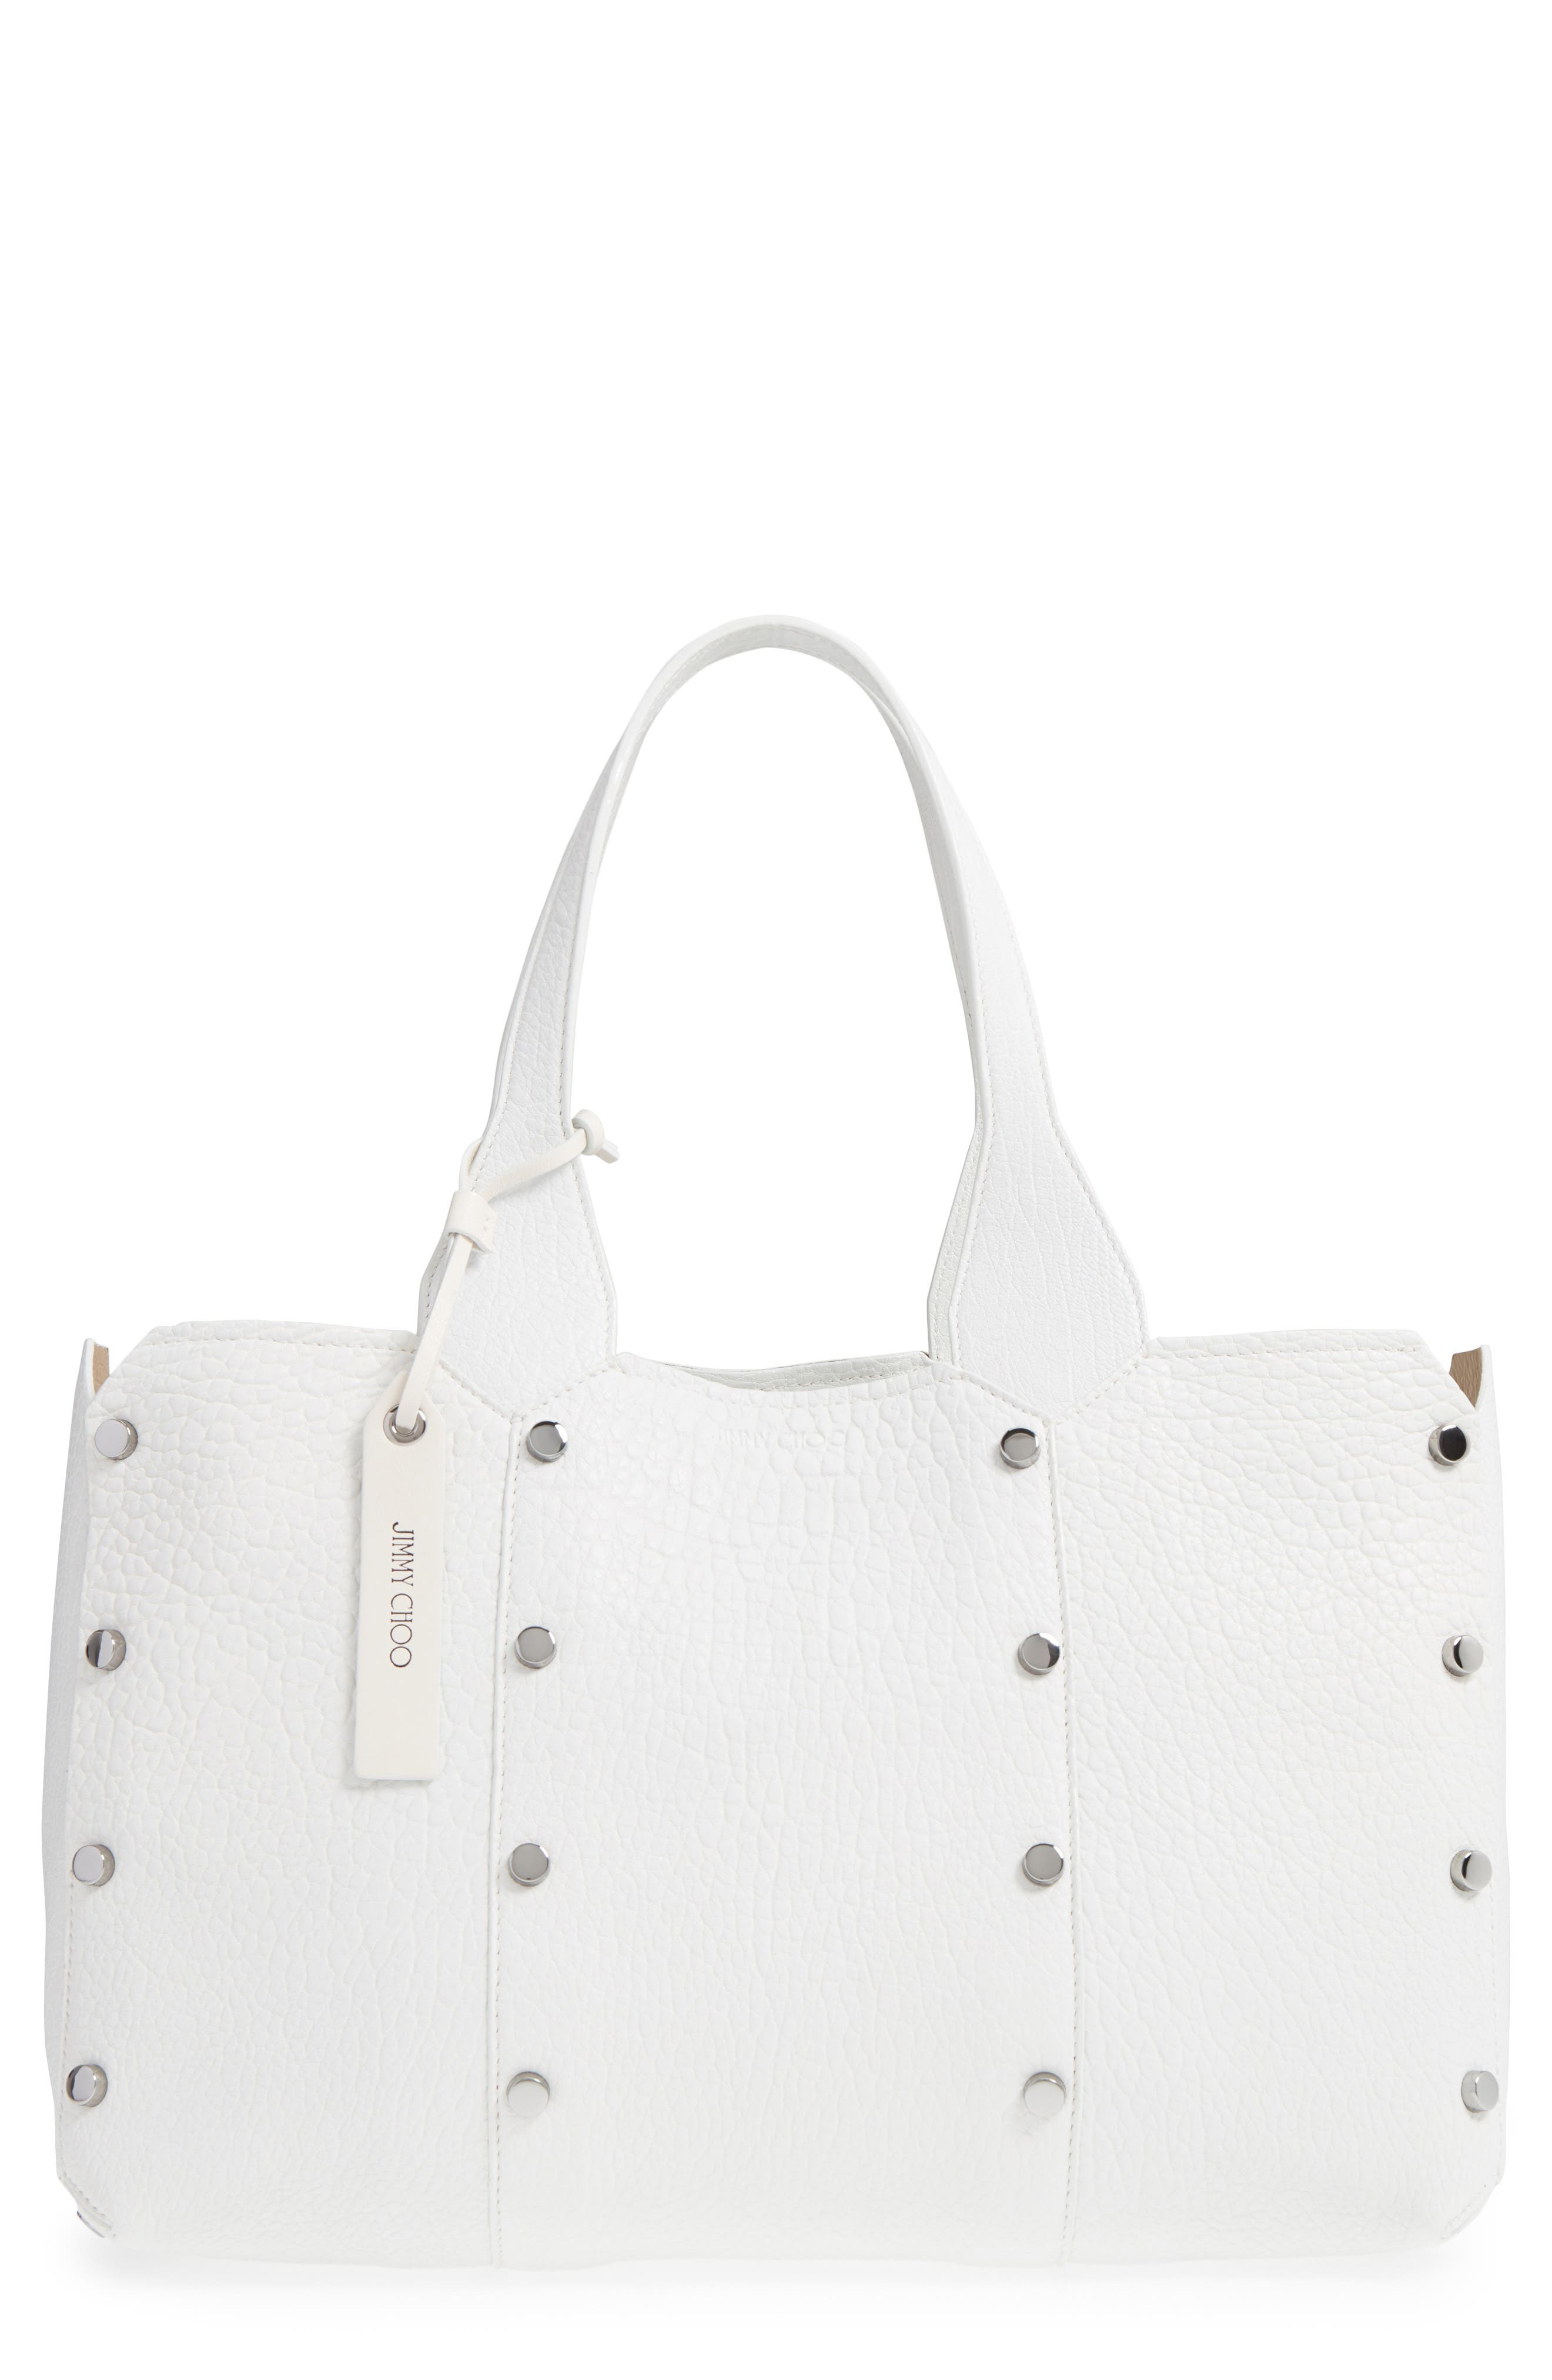 Alternate Image 1 Selected - Jimmy Choo Lockett Leather Shopper